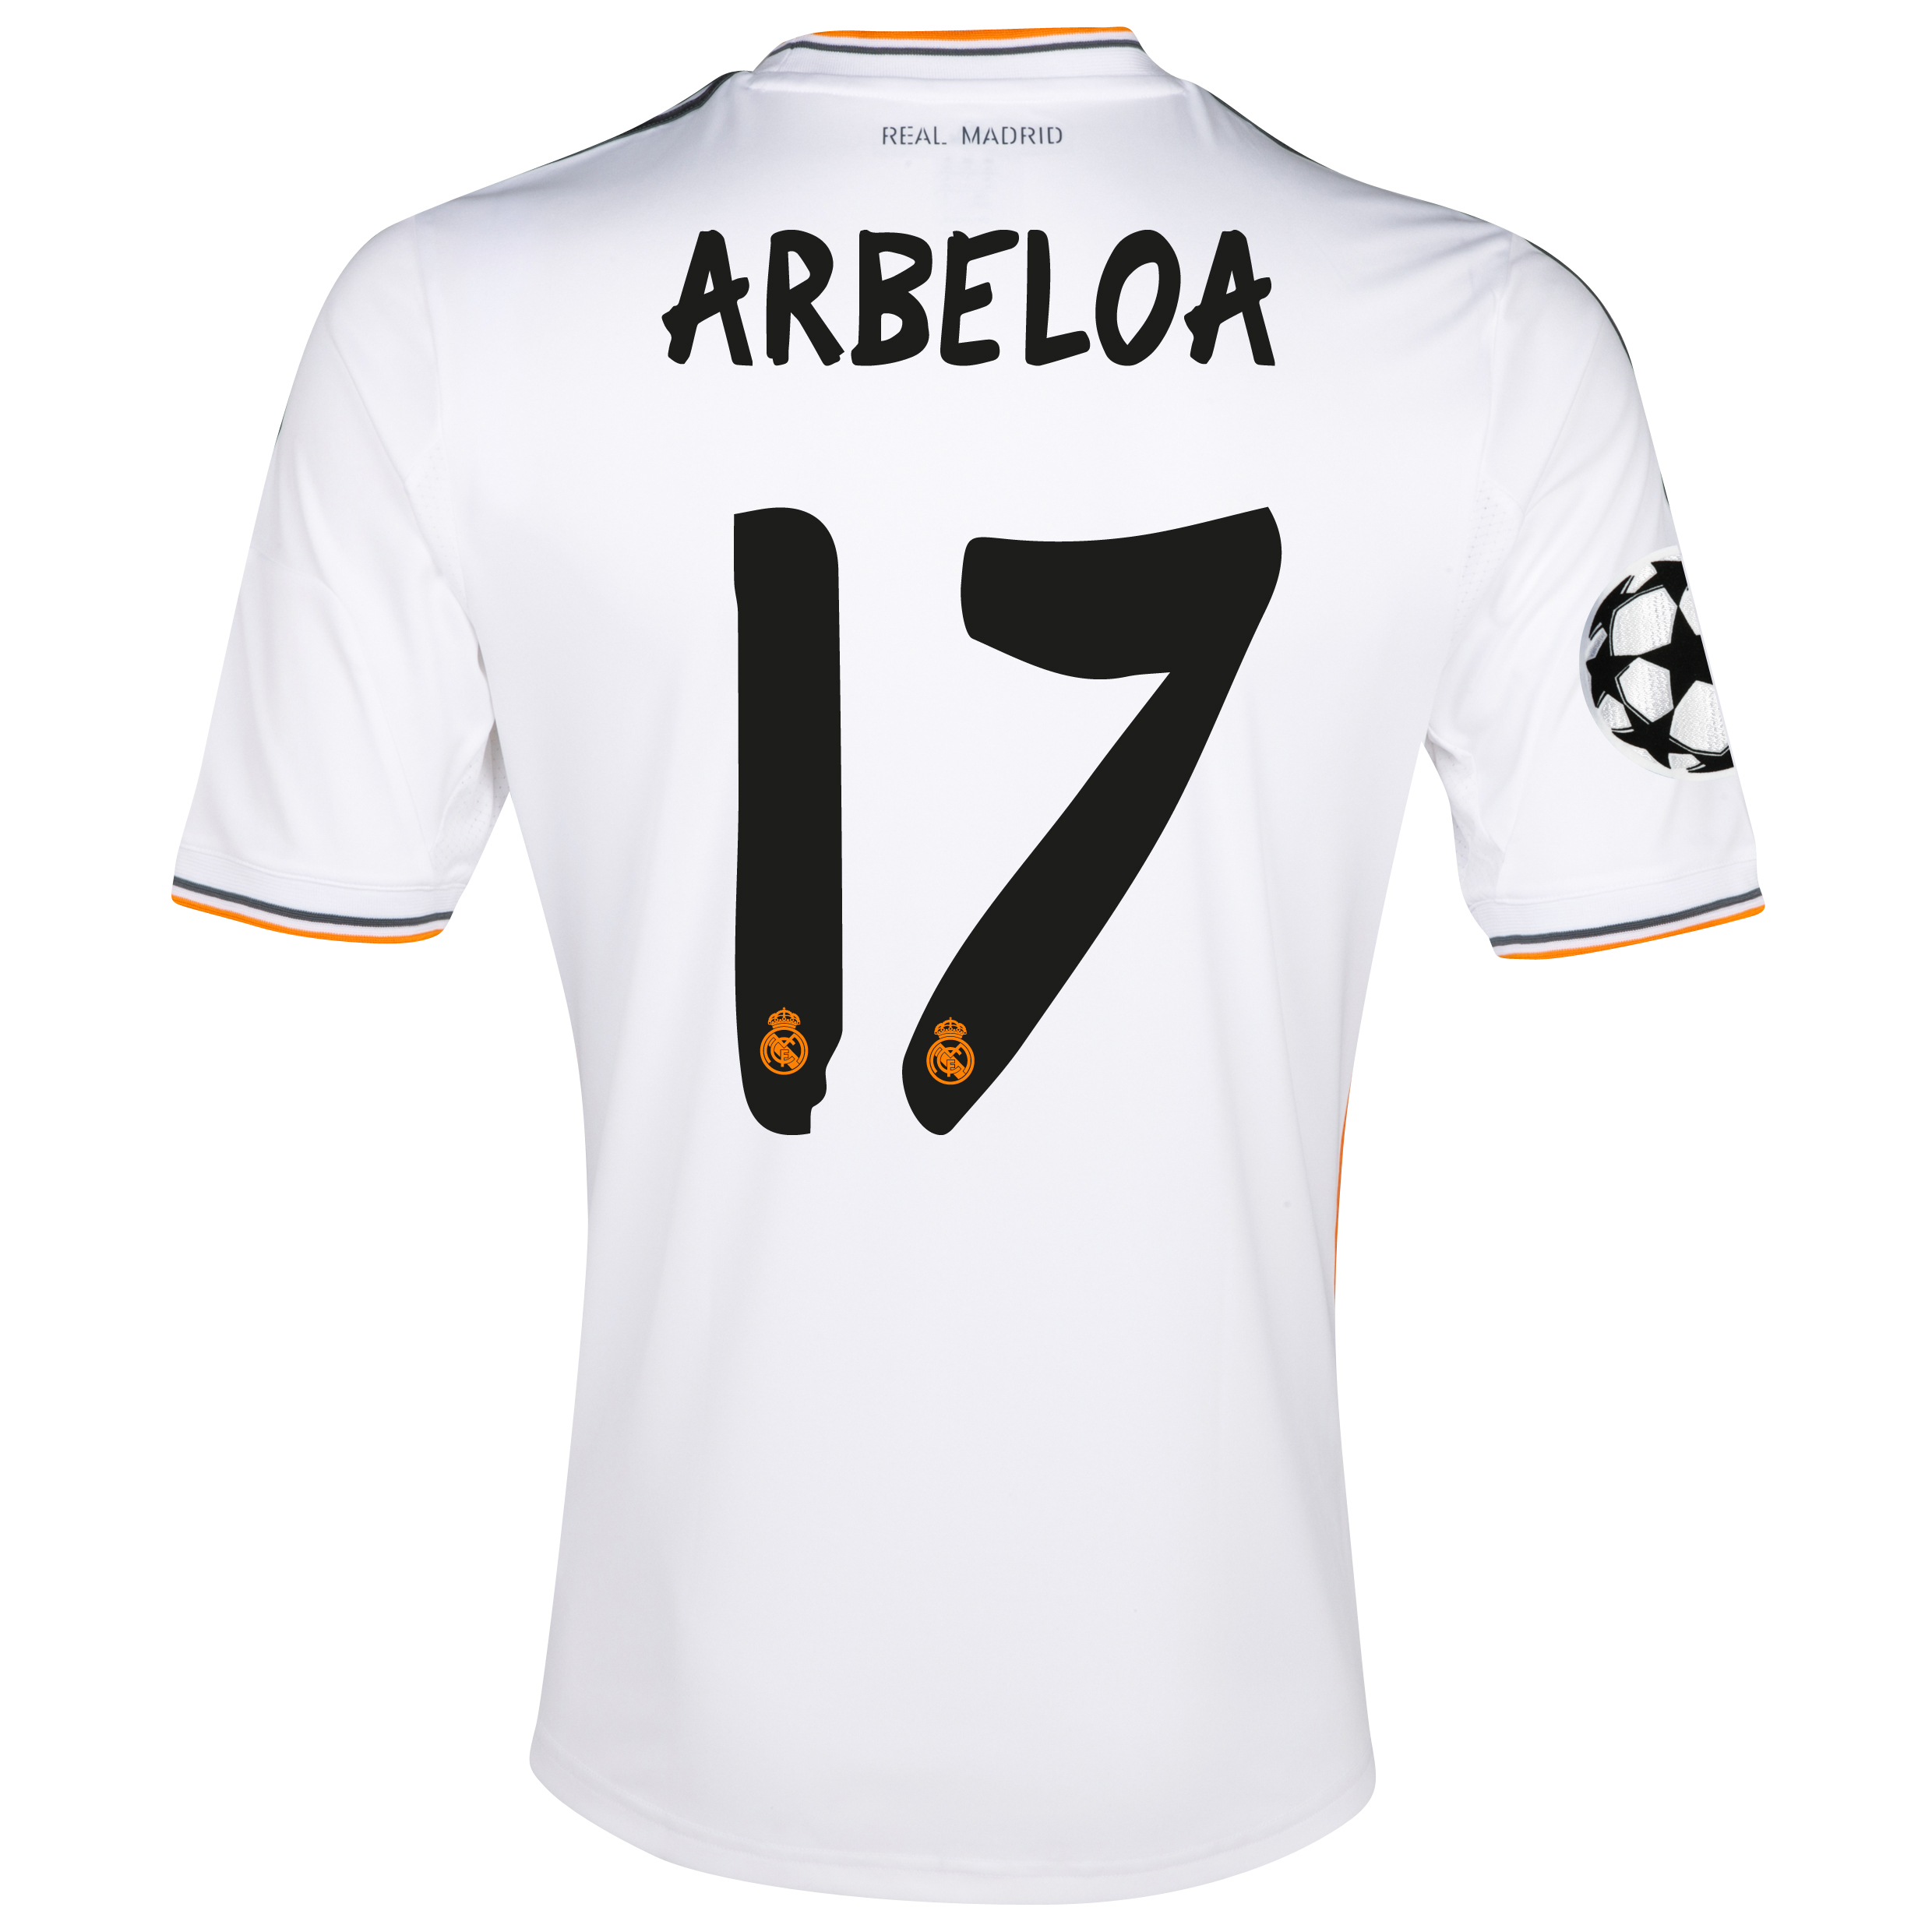 Real Madrid UEFA Champions League Home Shirt 2013/14 - kids with Arbeloa 17 printing